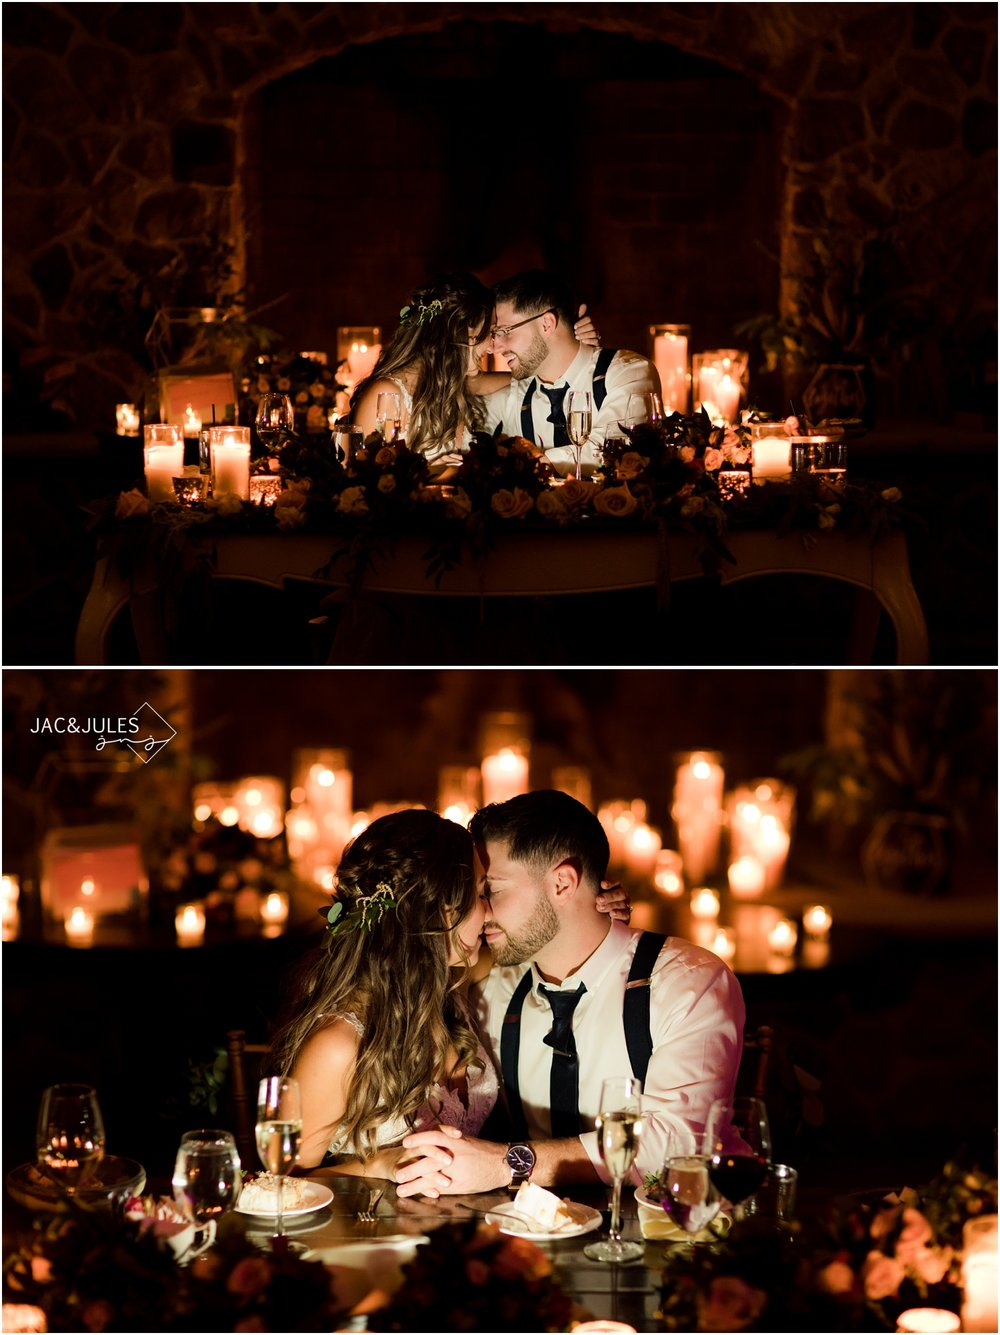 romantic candlelit photos of bride and groom at sweetheart table in front of the stone fireplace at the ryland inn.